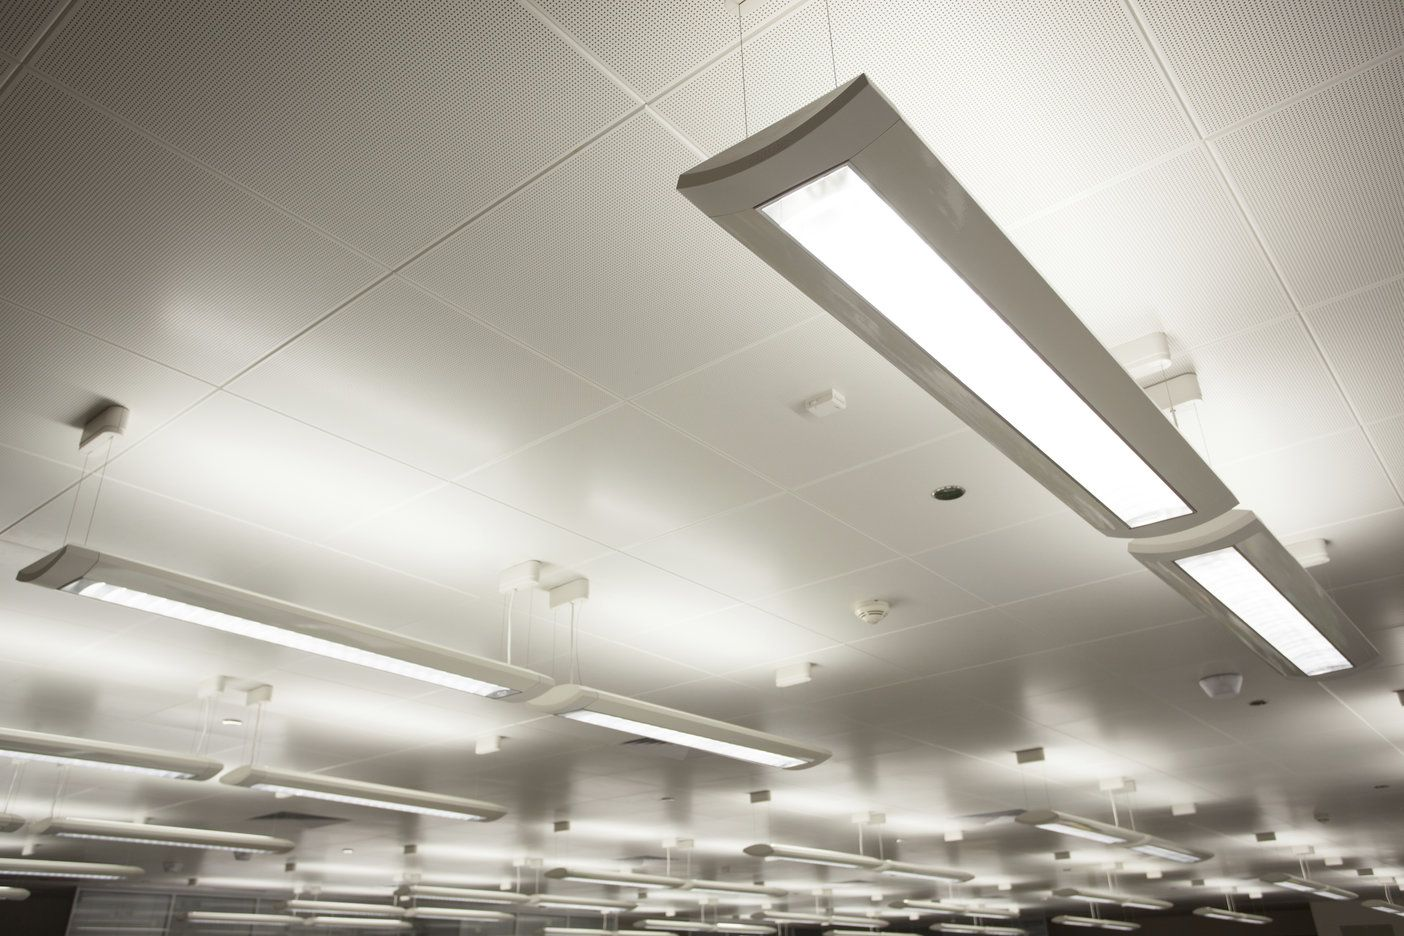 Ideal Fluorescent Light Fixtures | lighting | Pinterest ...